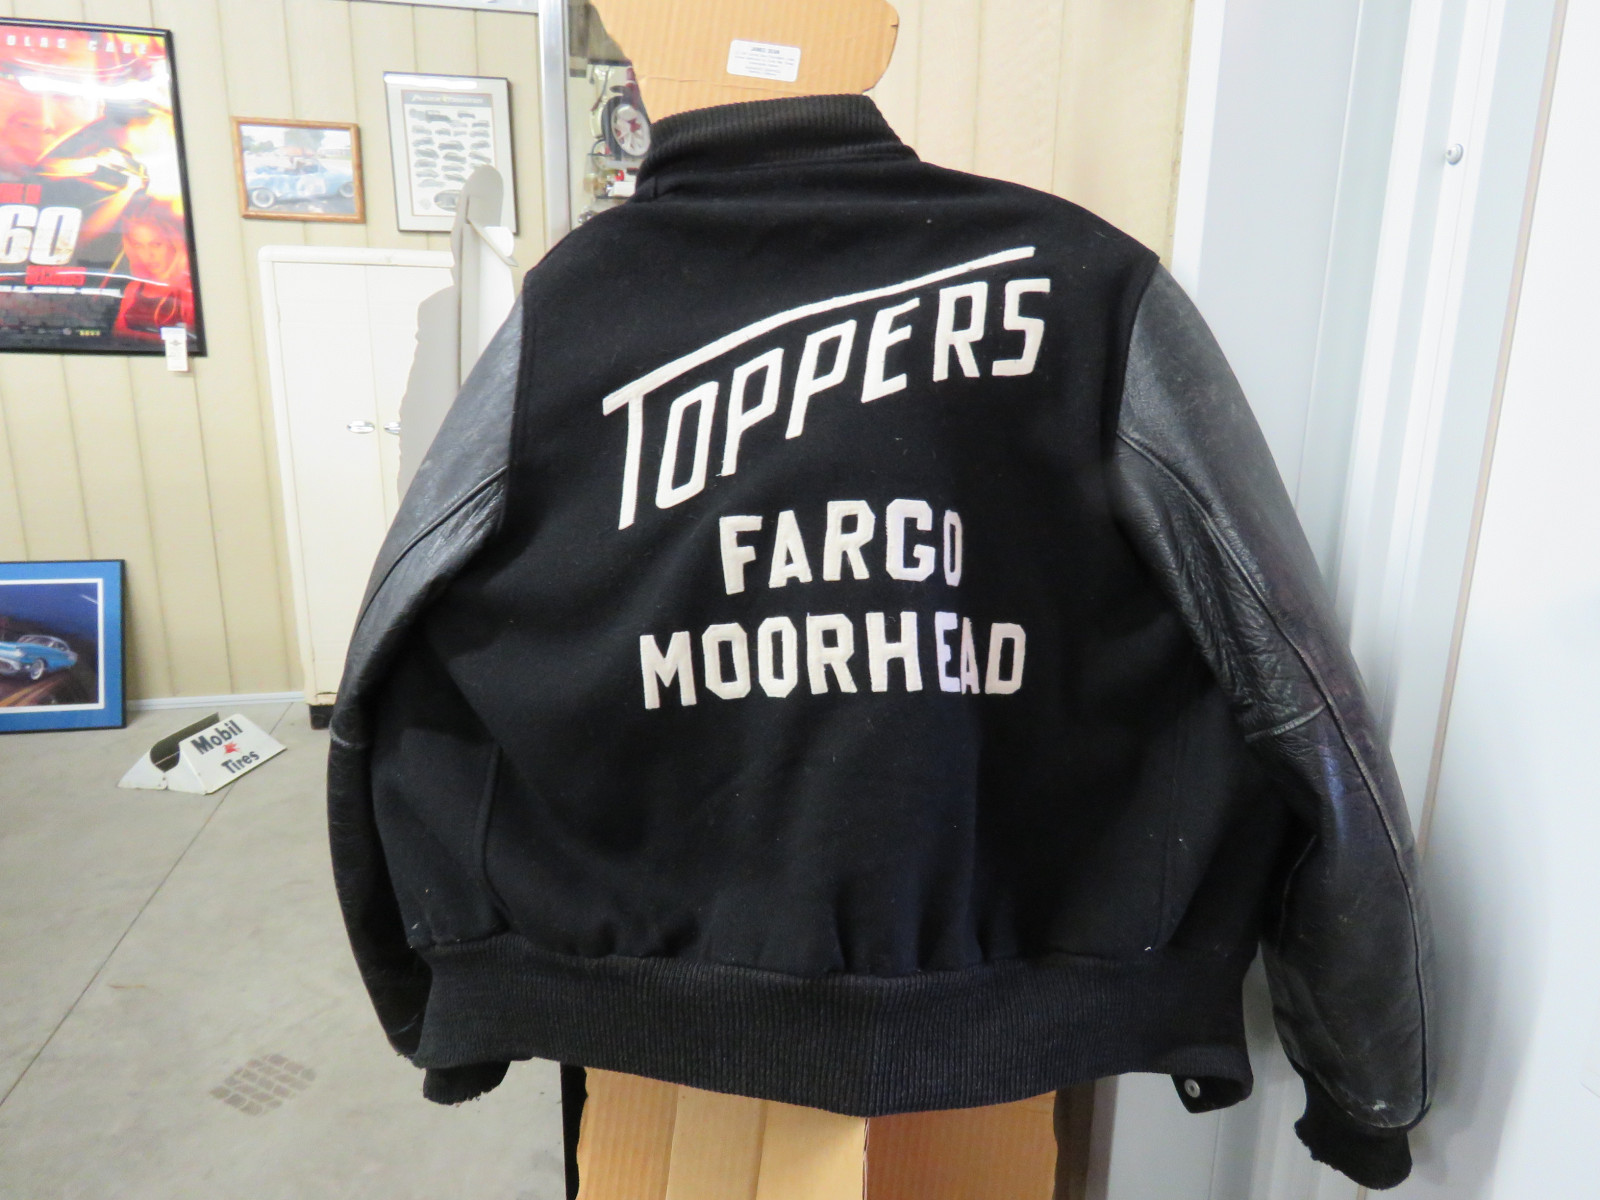 Topper Car Club Letter Jacket - Image 2